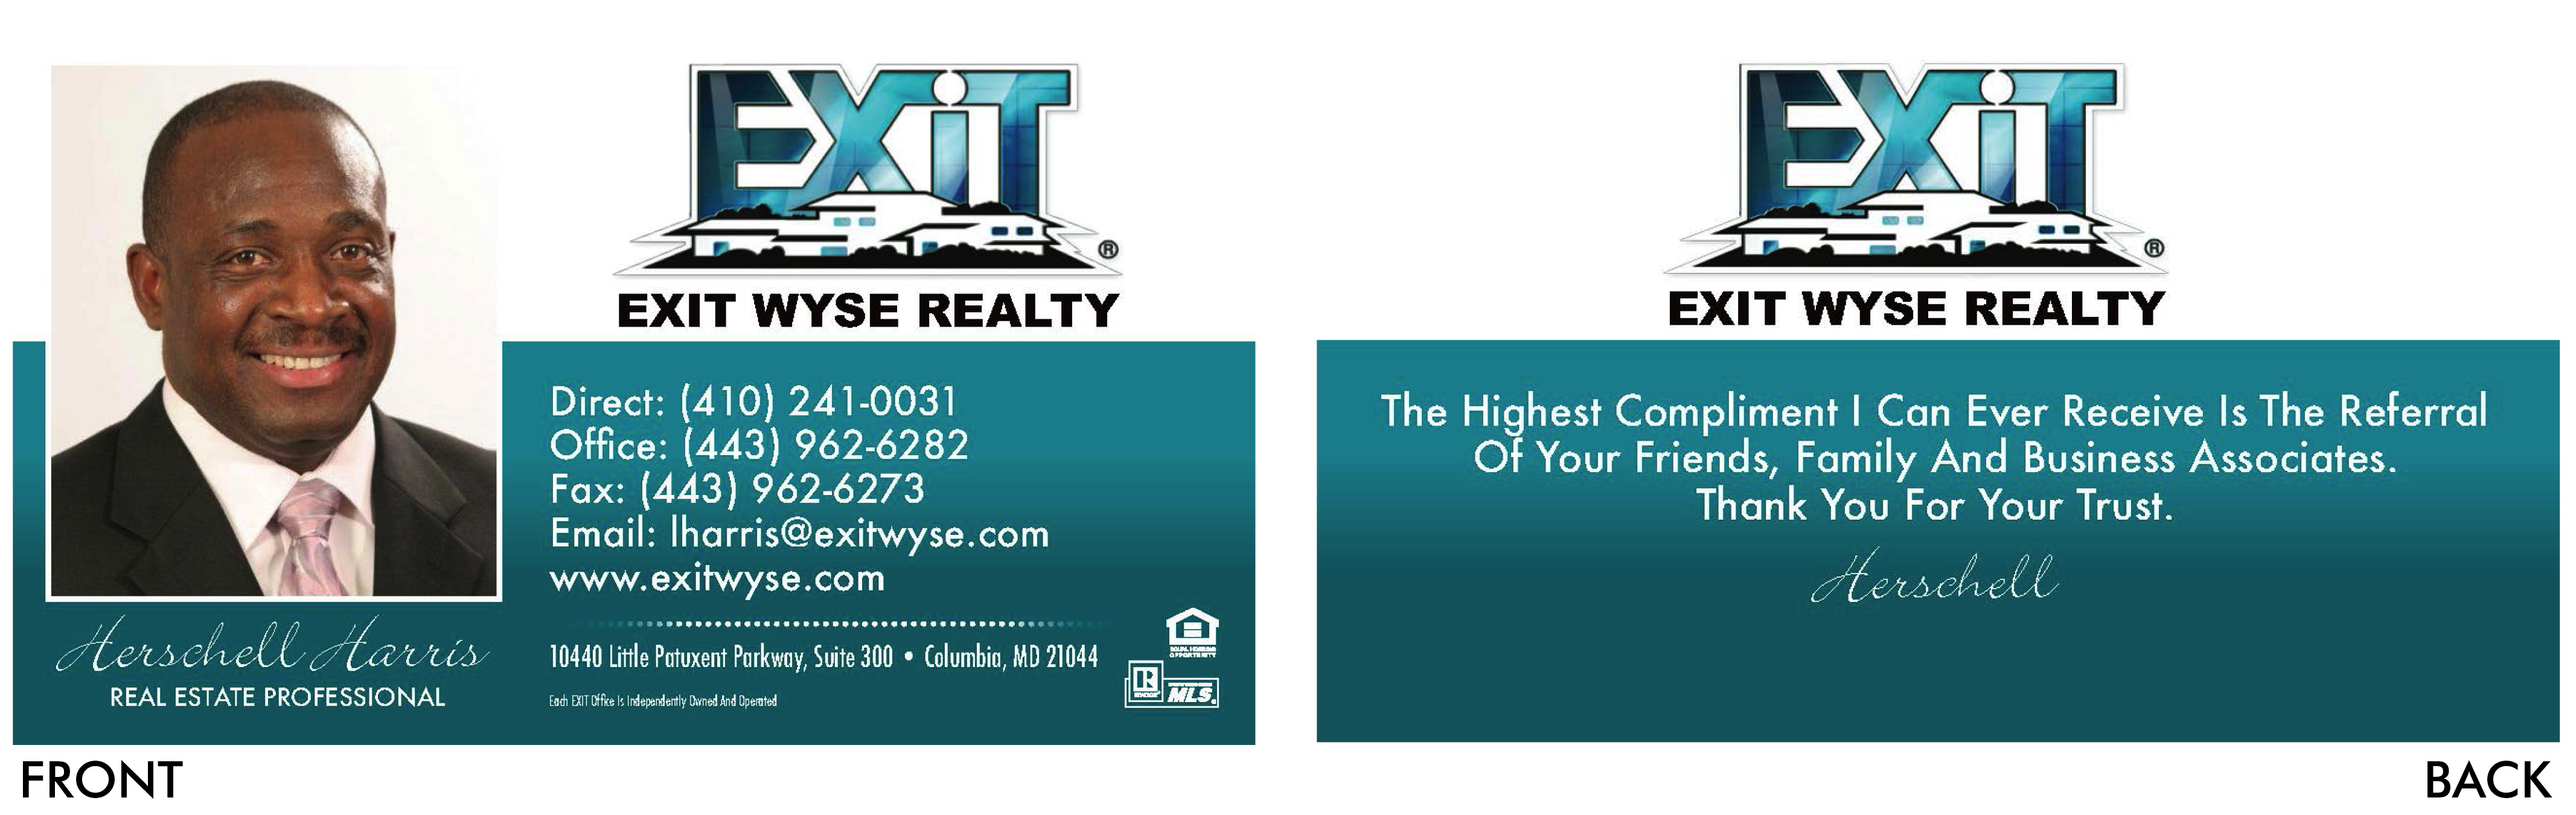 Exit Wyse Business Card